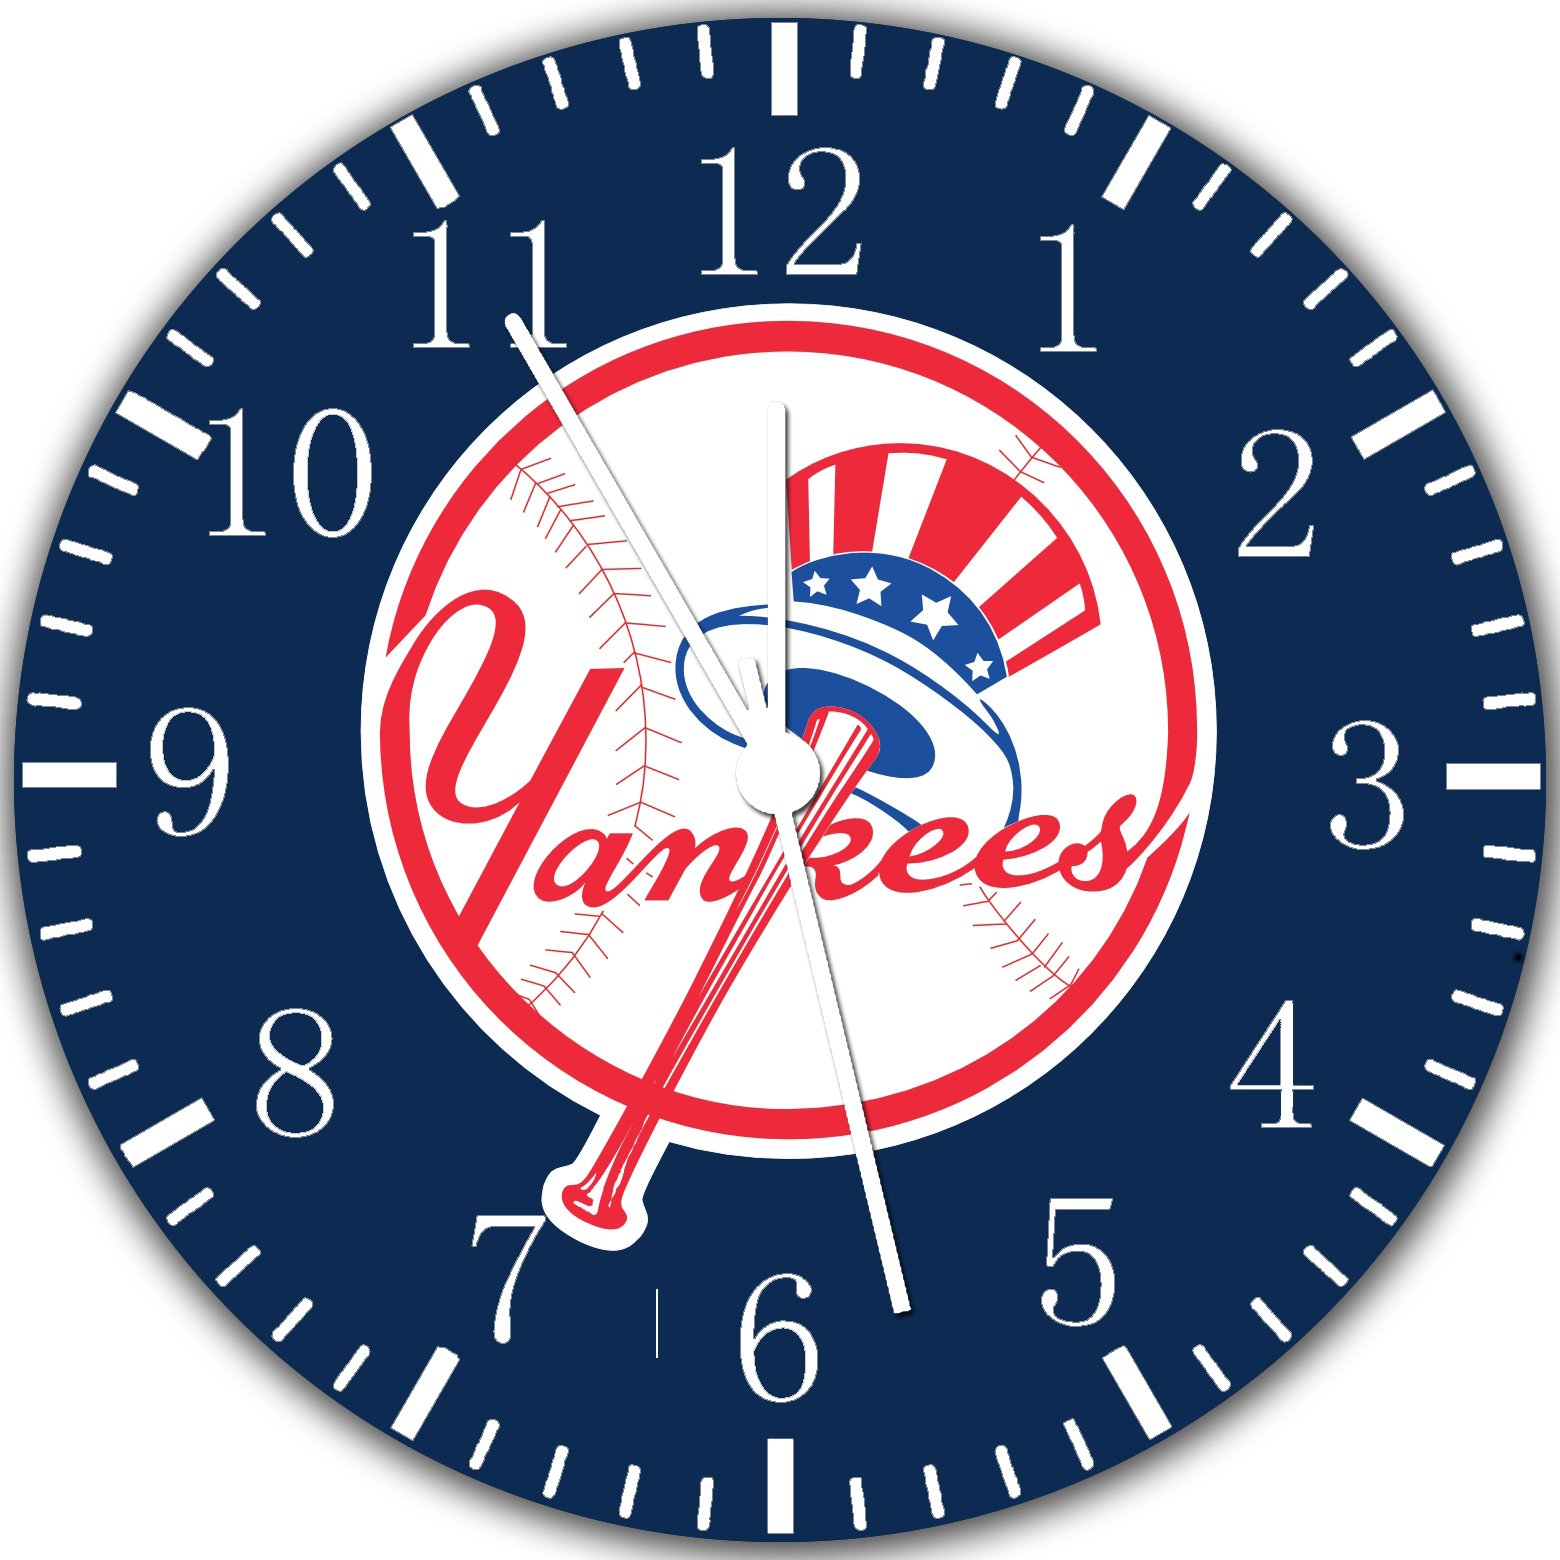 Yankees Borderless Frameless Wall Clock W103 Nice For Decor Or Gifts